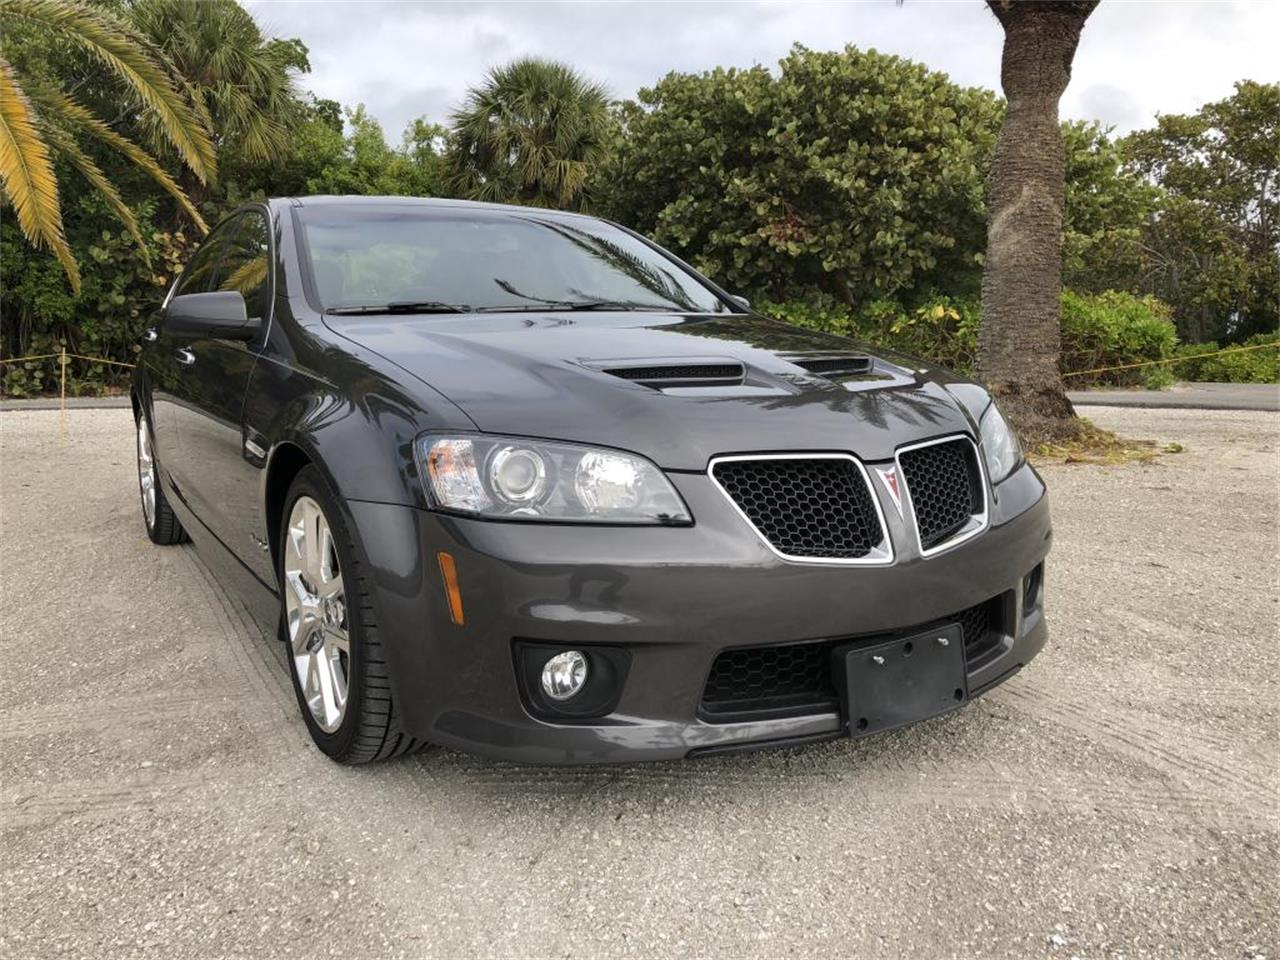 2009 Pontiac G8 for sale in Milford City, CT – photo 10